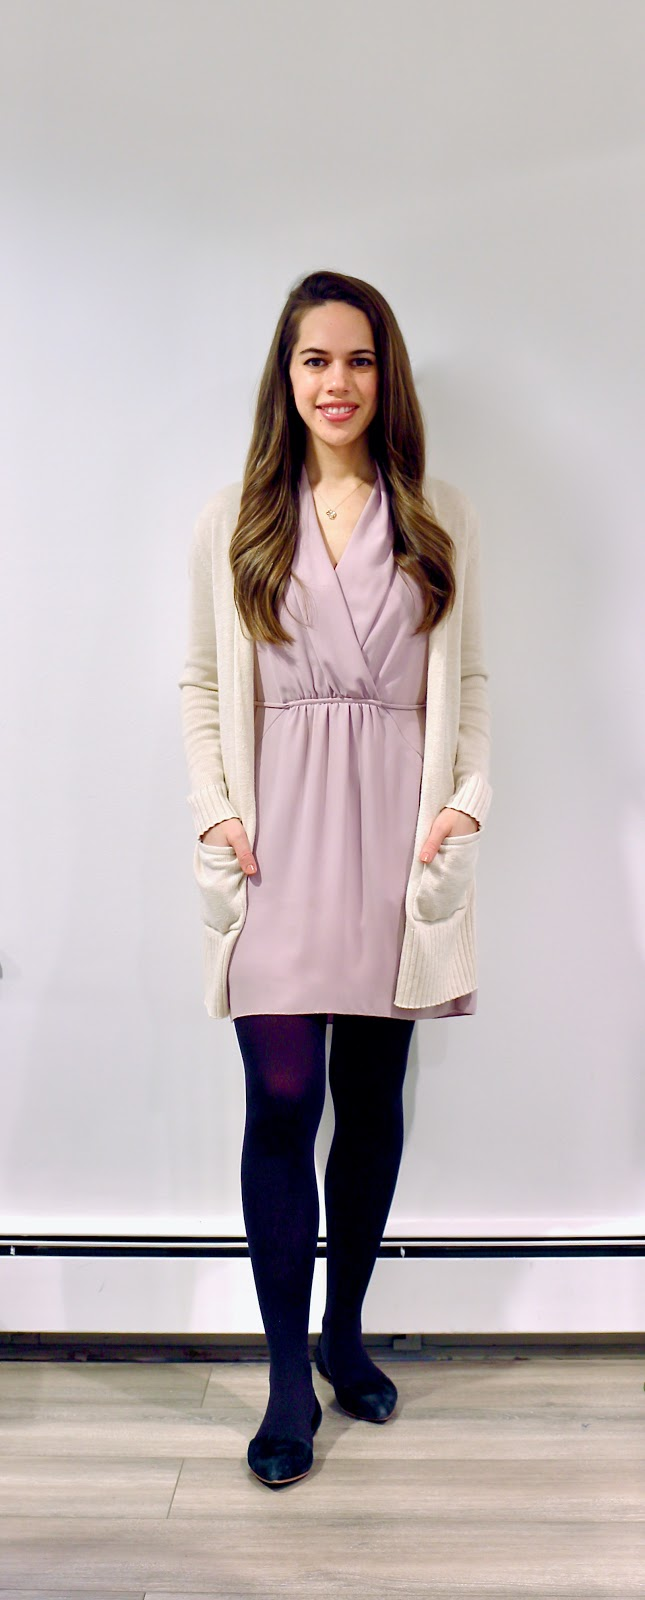 Jules in Flats - Aritzia Sabine Dress with Long Cardigan (Business Casual Winter Workwear on a Budget)